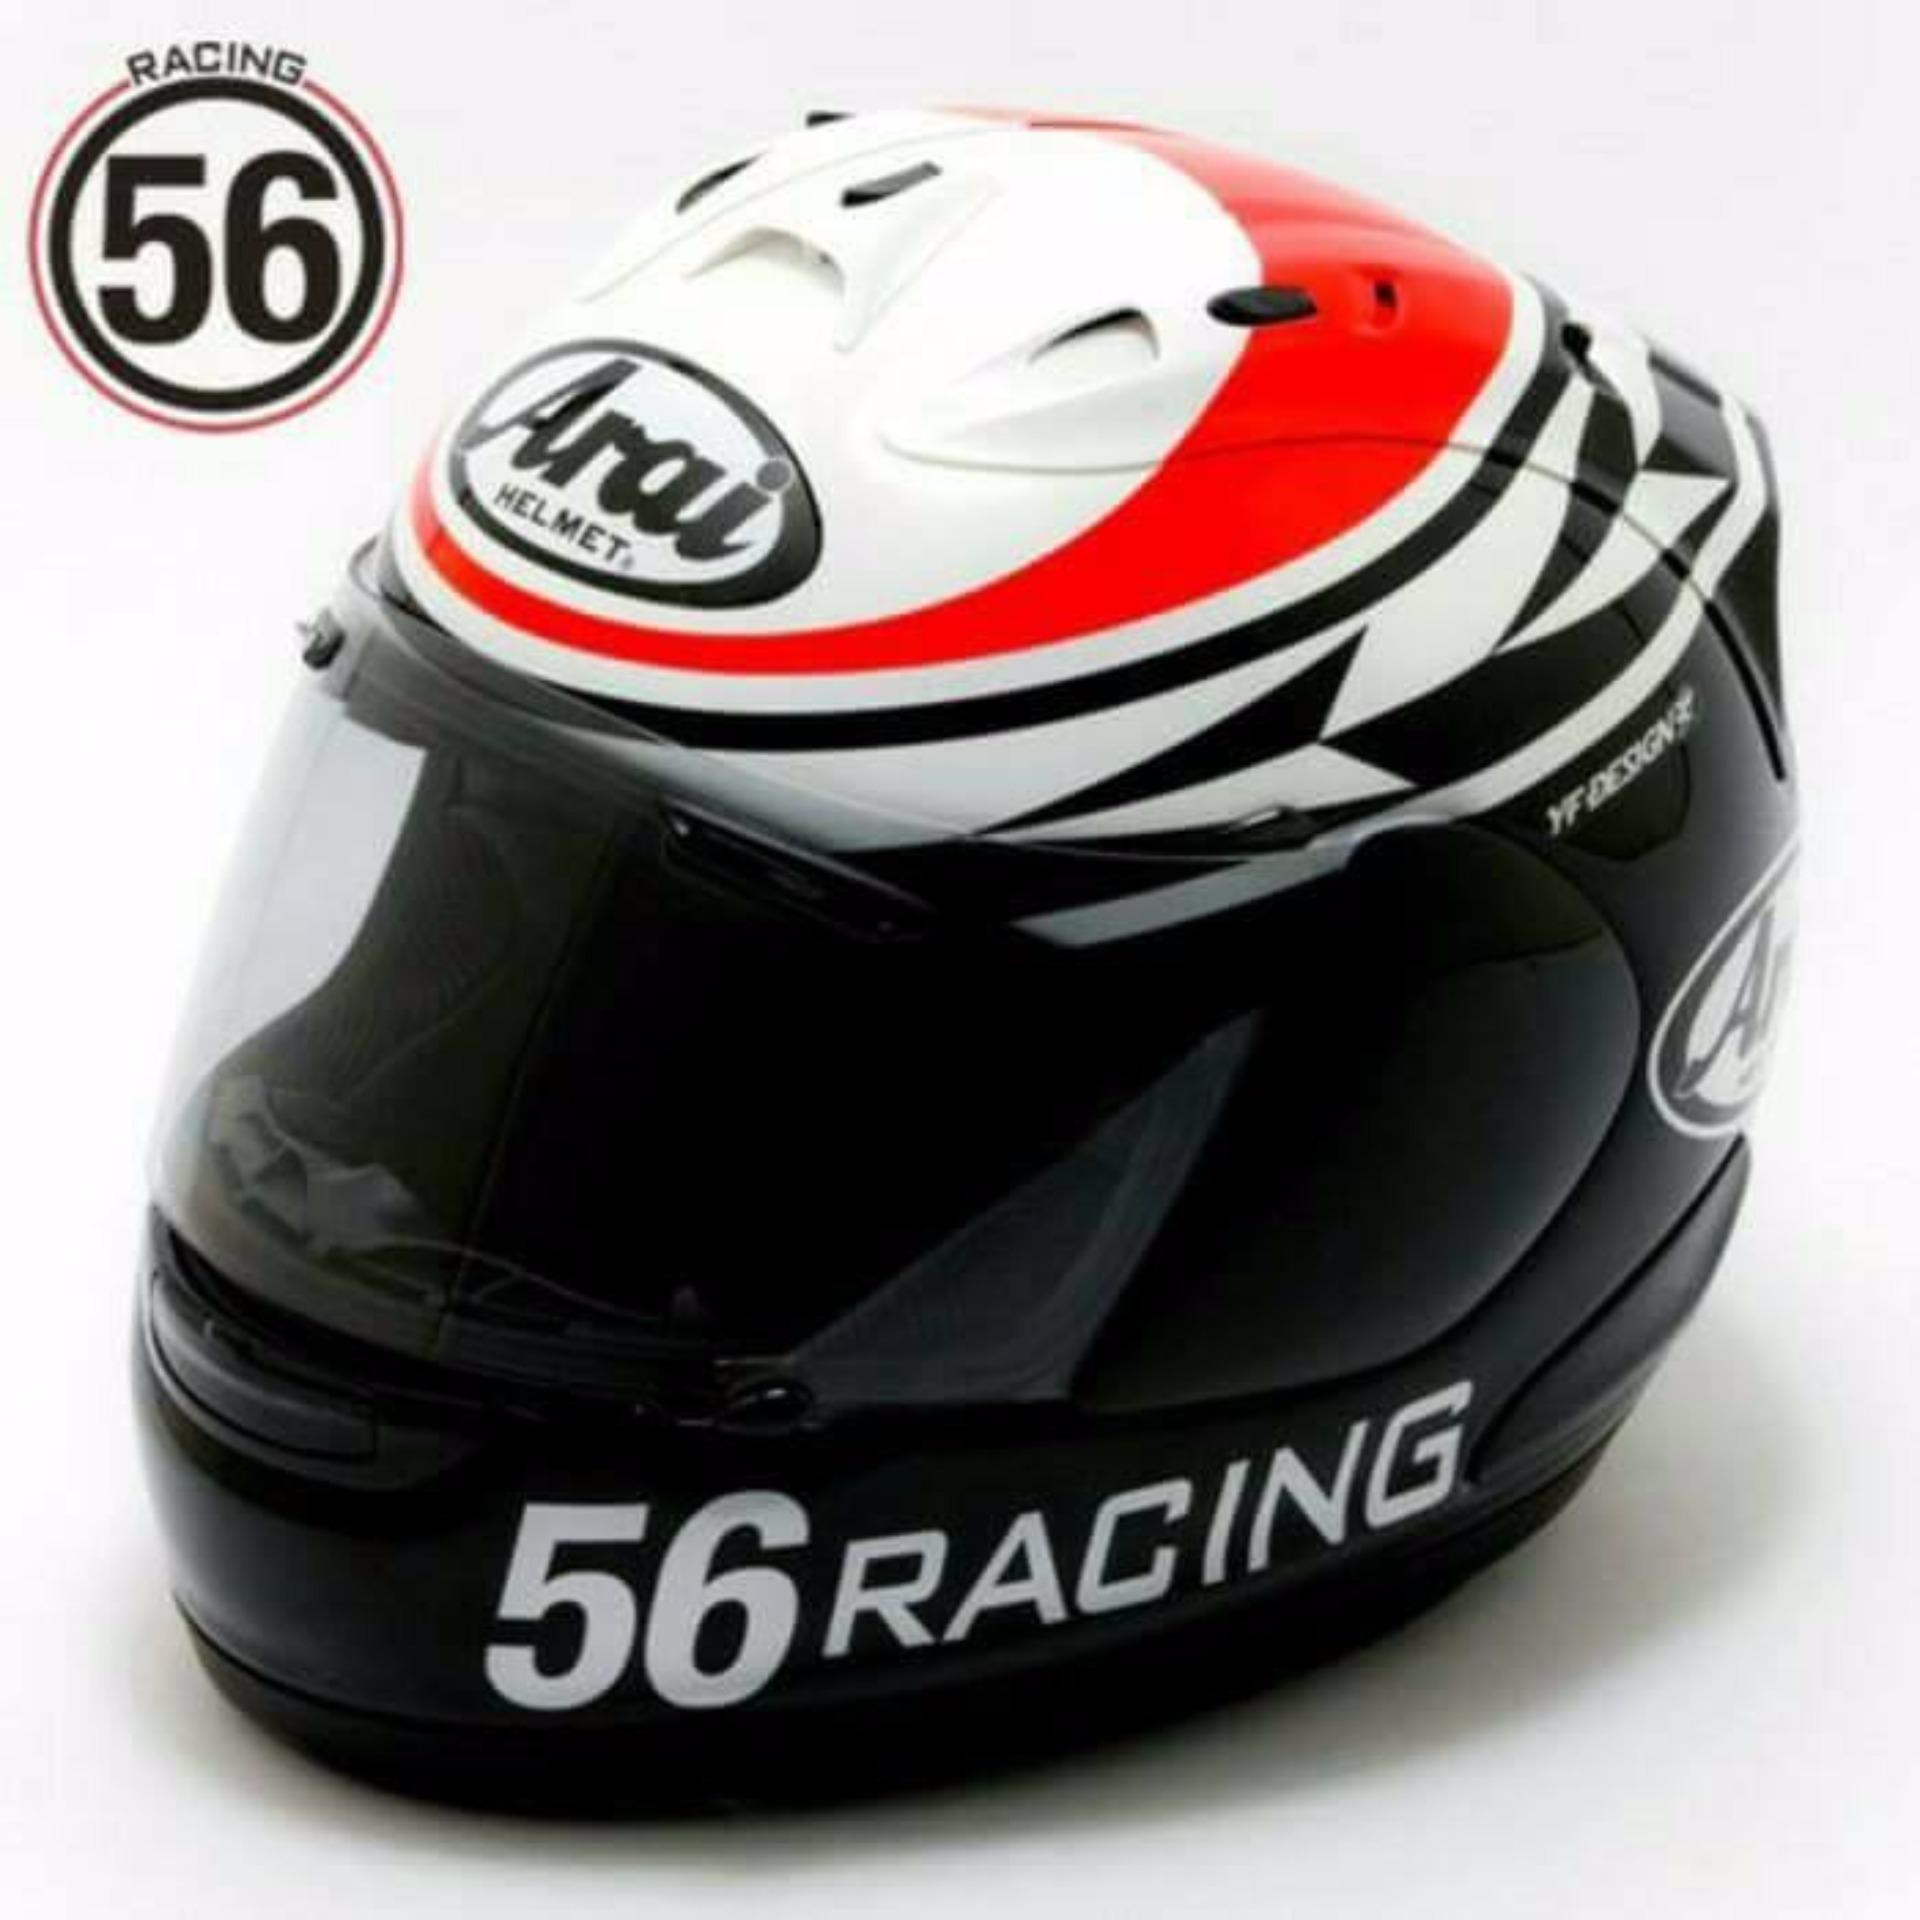 Arai Model RX-7 RR5 56 RACING .